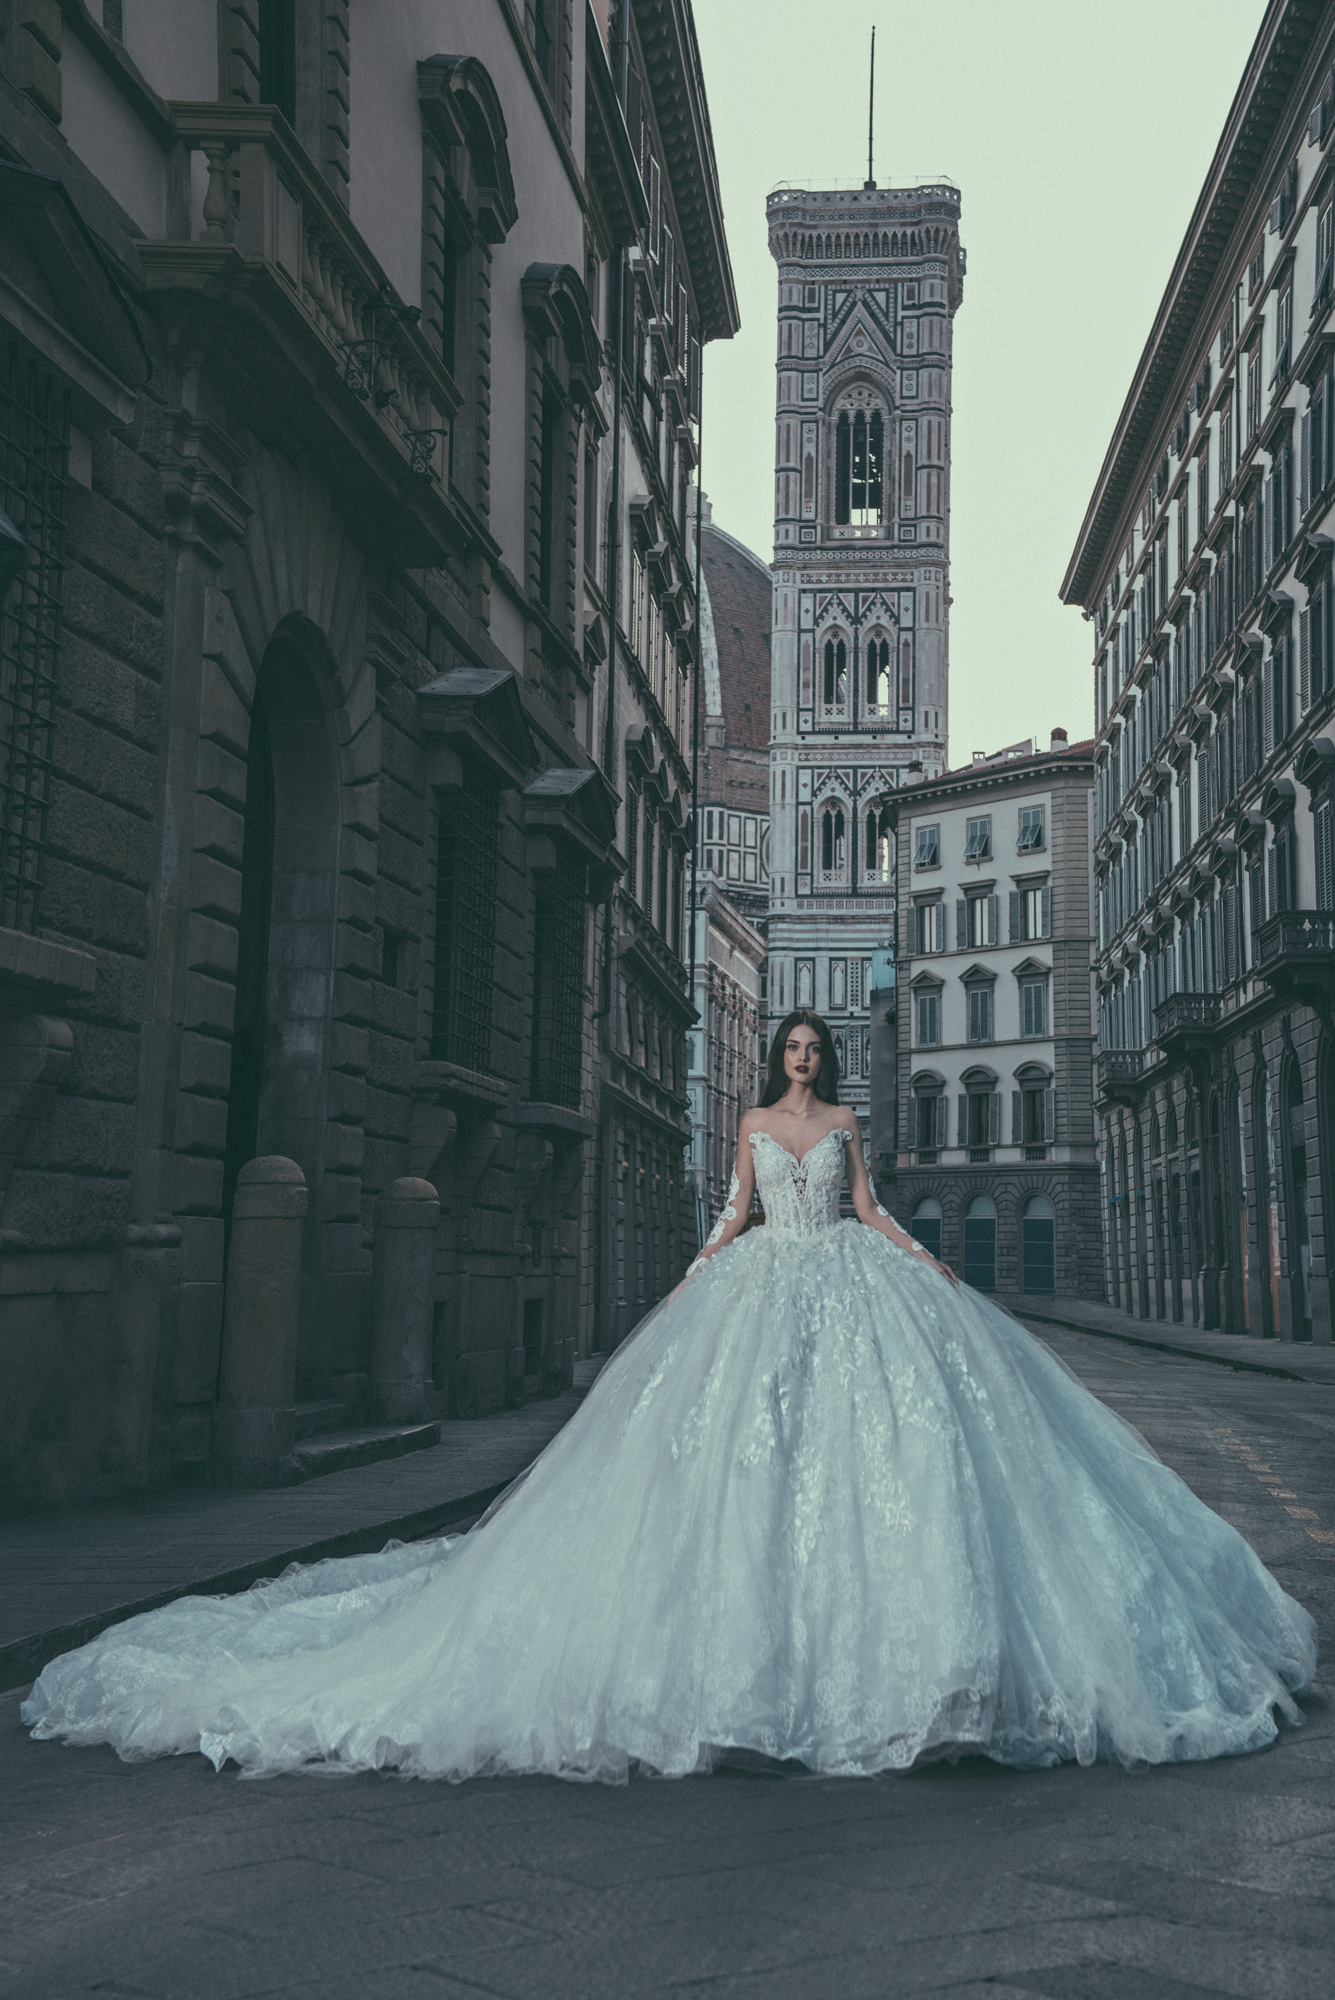 CB Couture #01 - This long sleeve lace mermaid wedding gown features a detachable skirt and is embellished with crystals and pearls. The illusion back leads into an exposed zipper with crystal beading and buttons going up the back. Also features a royal cathedral train.